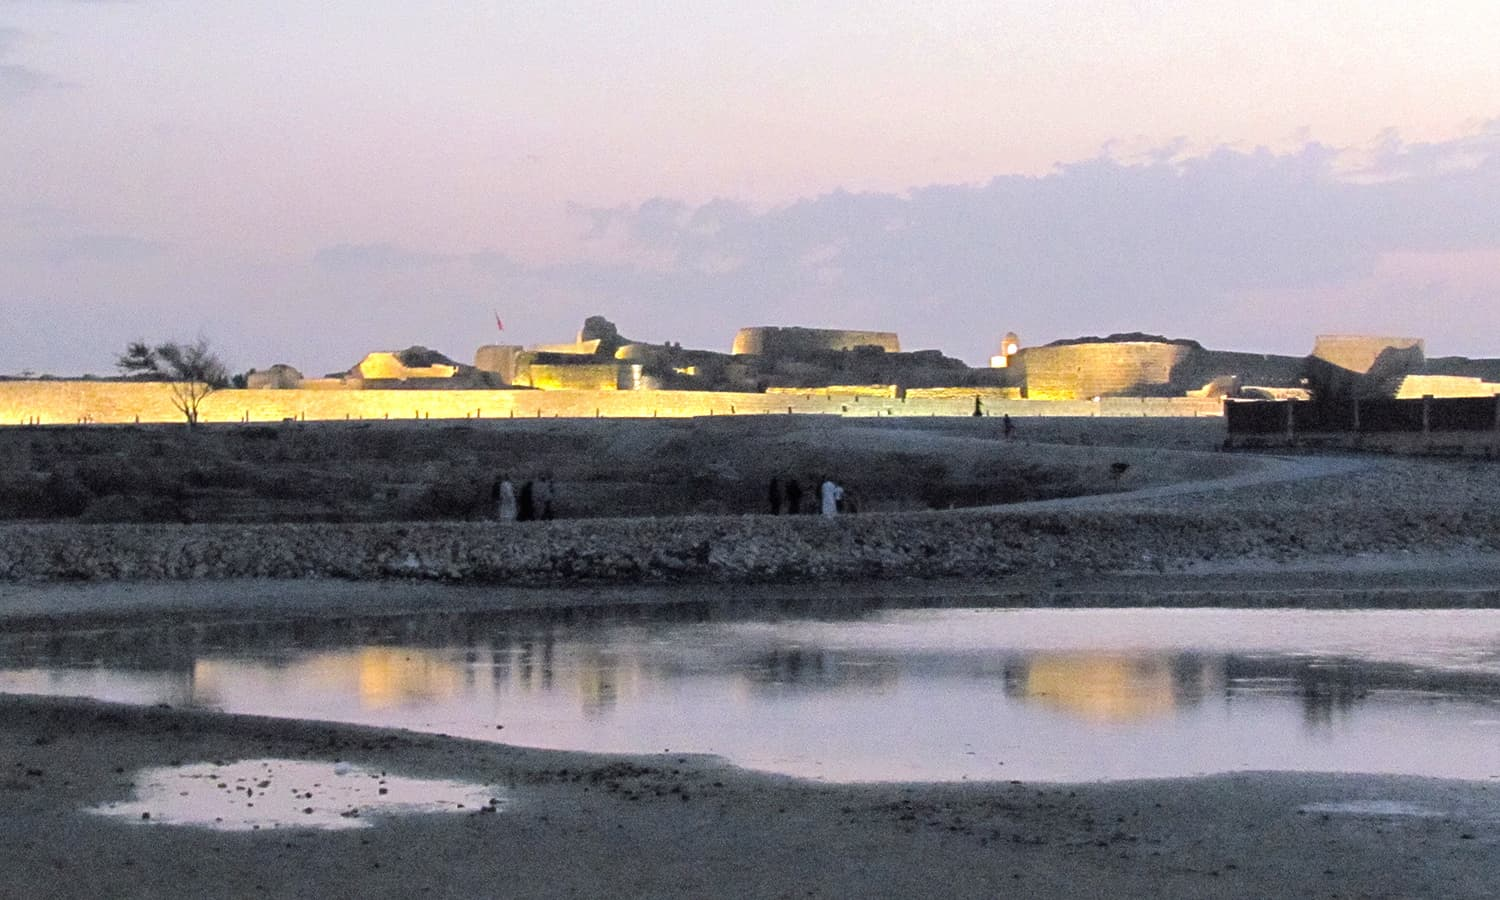 The Qalat Al Bahrain lit up in the evening.